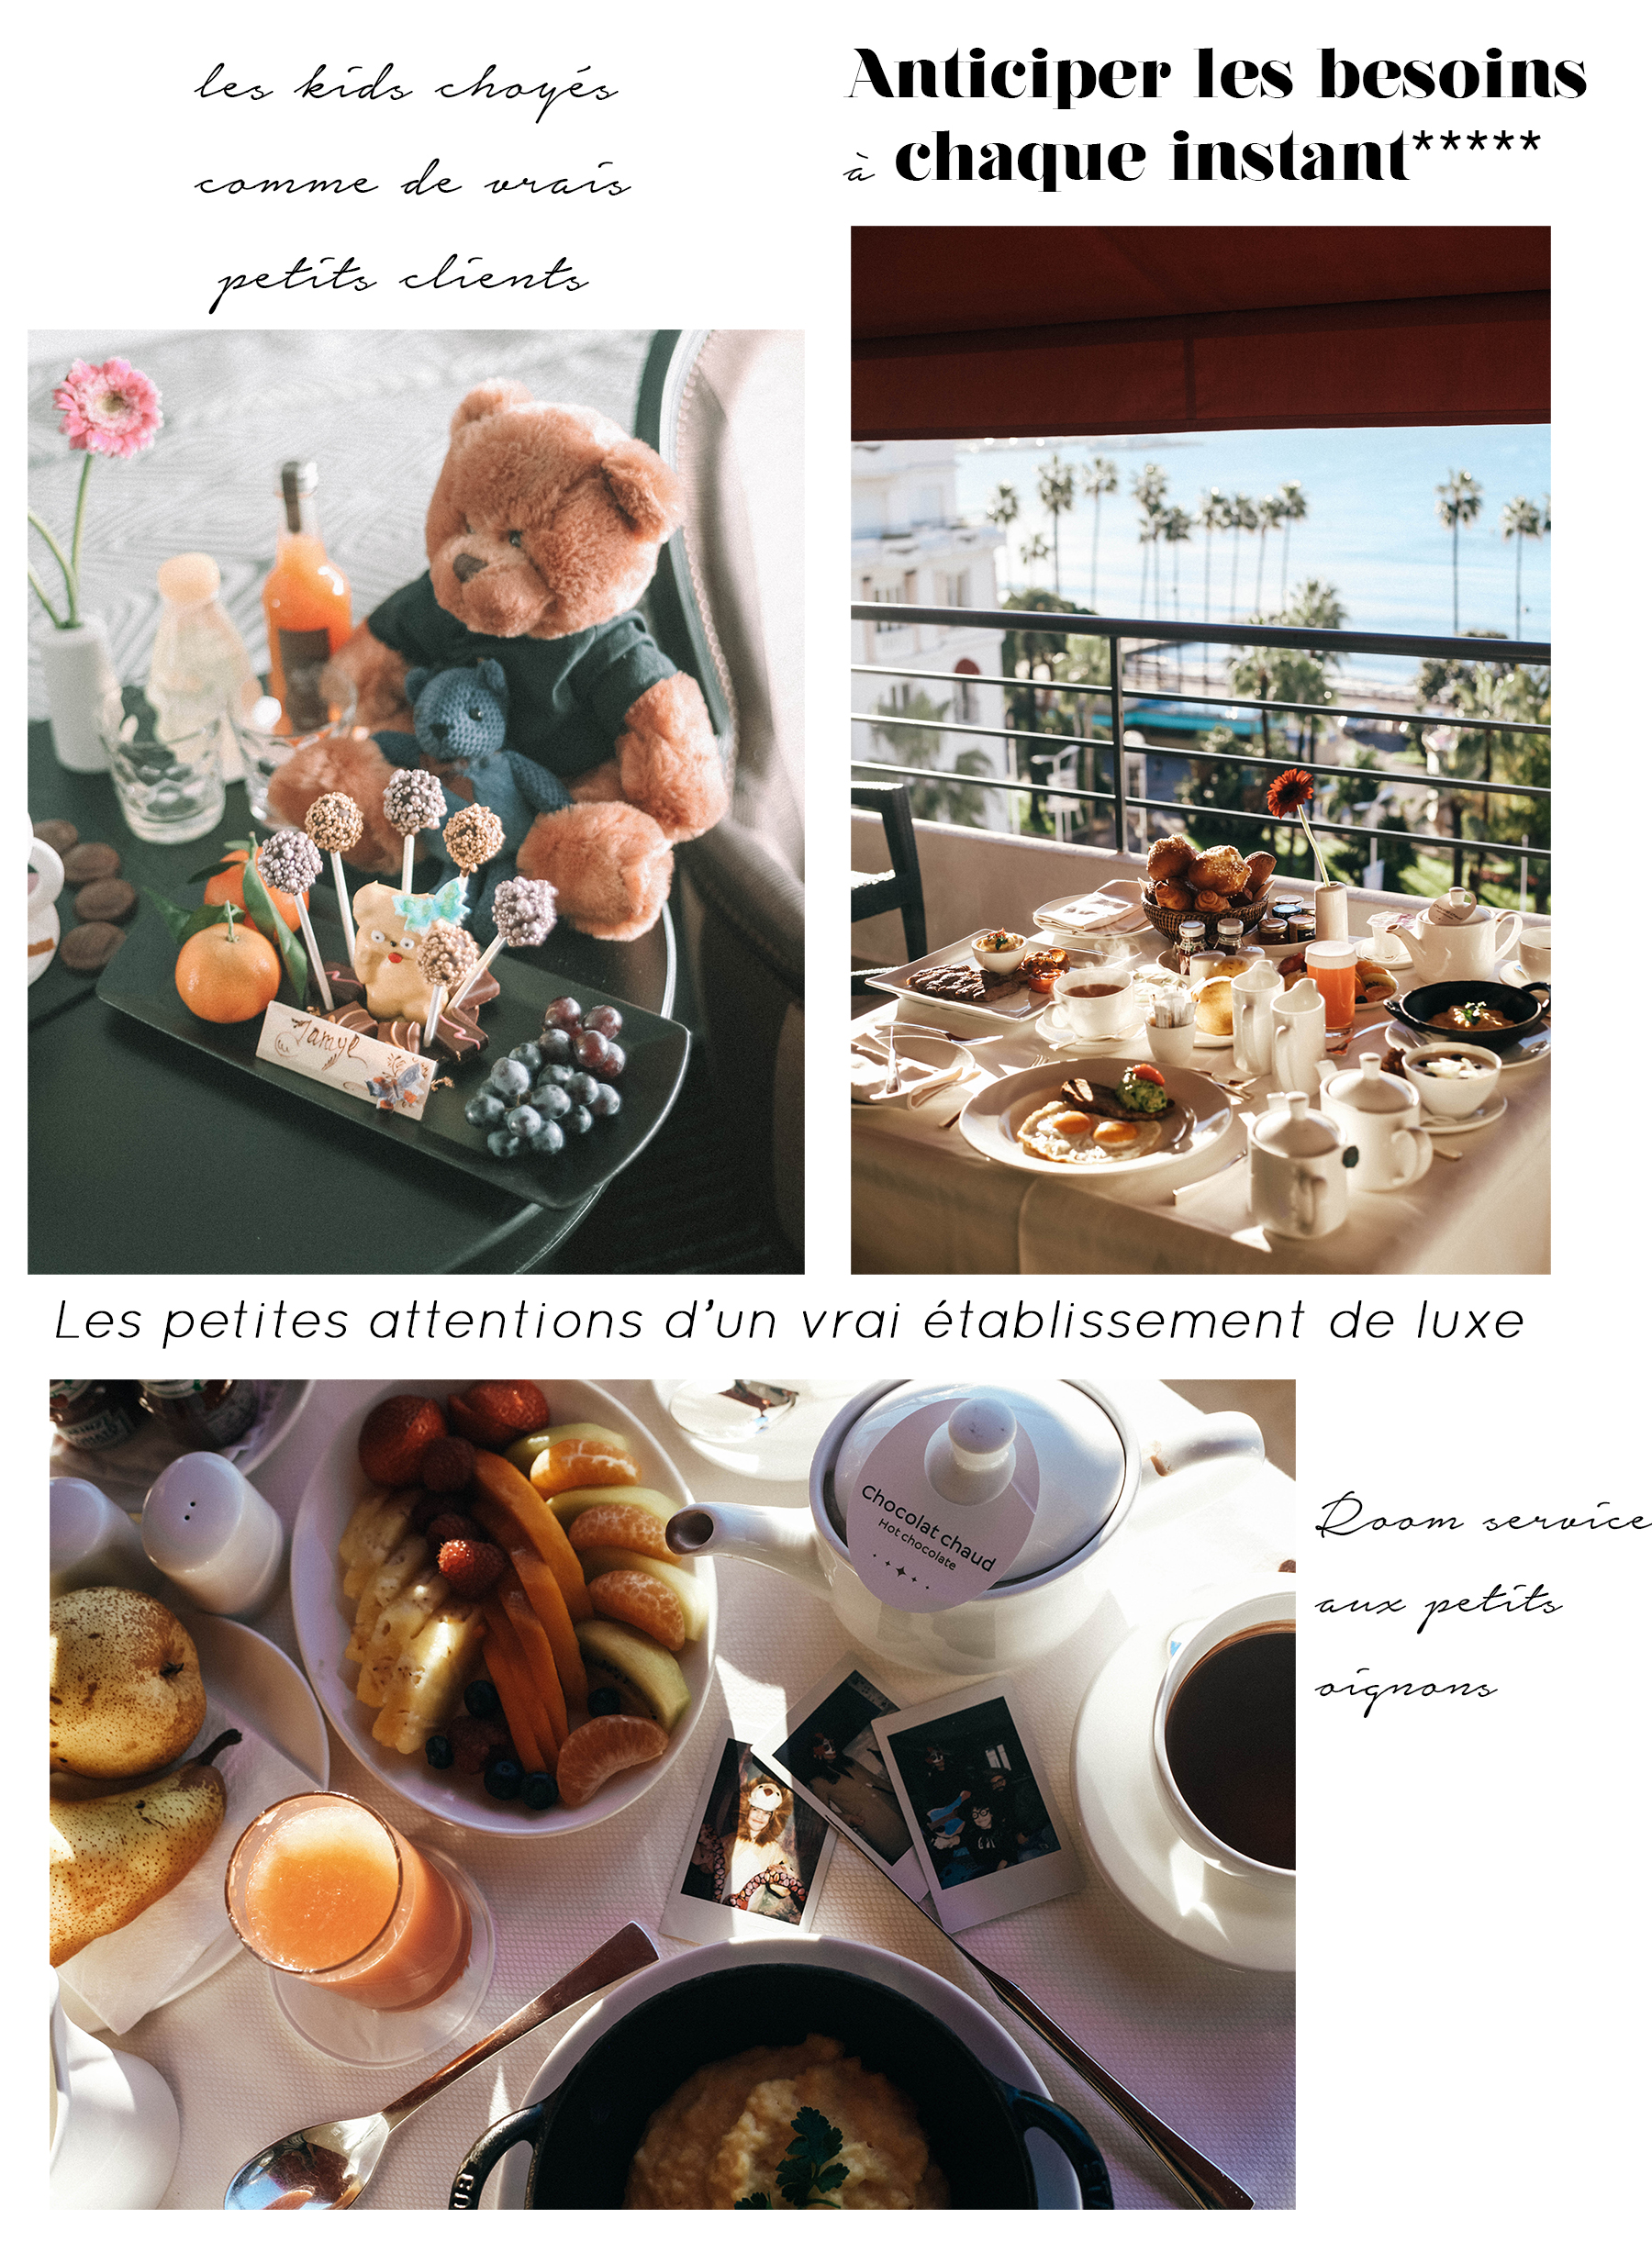 Barrière-majestic-boubouteatime-hotel-review